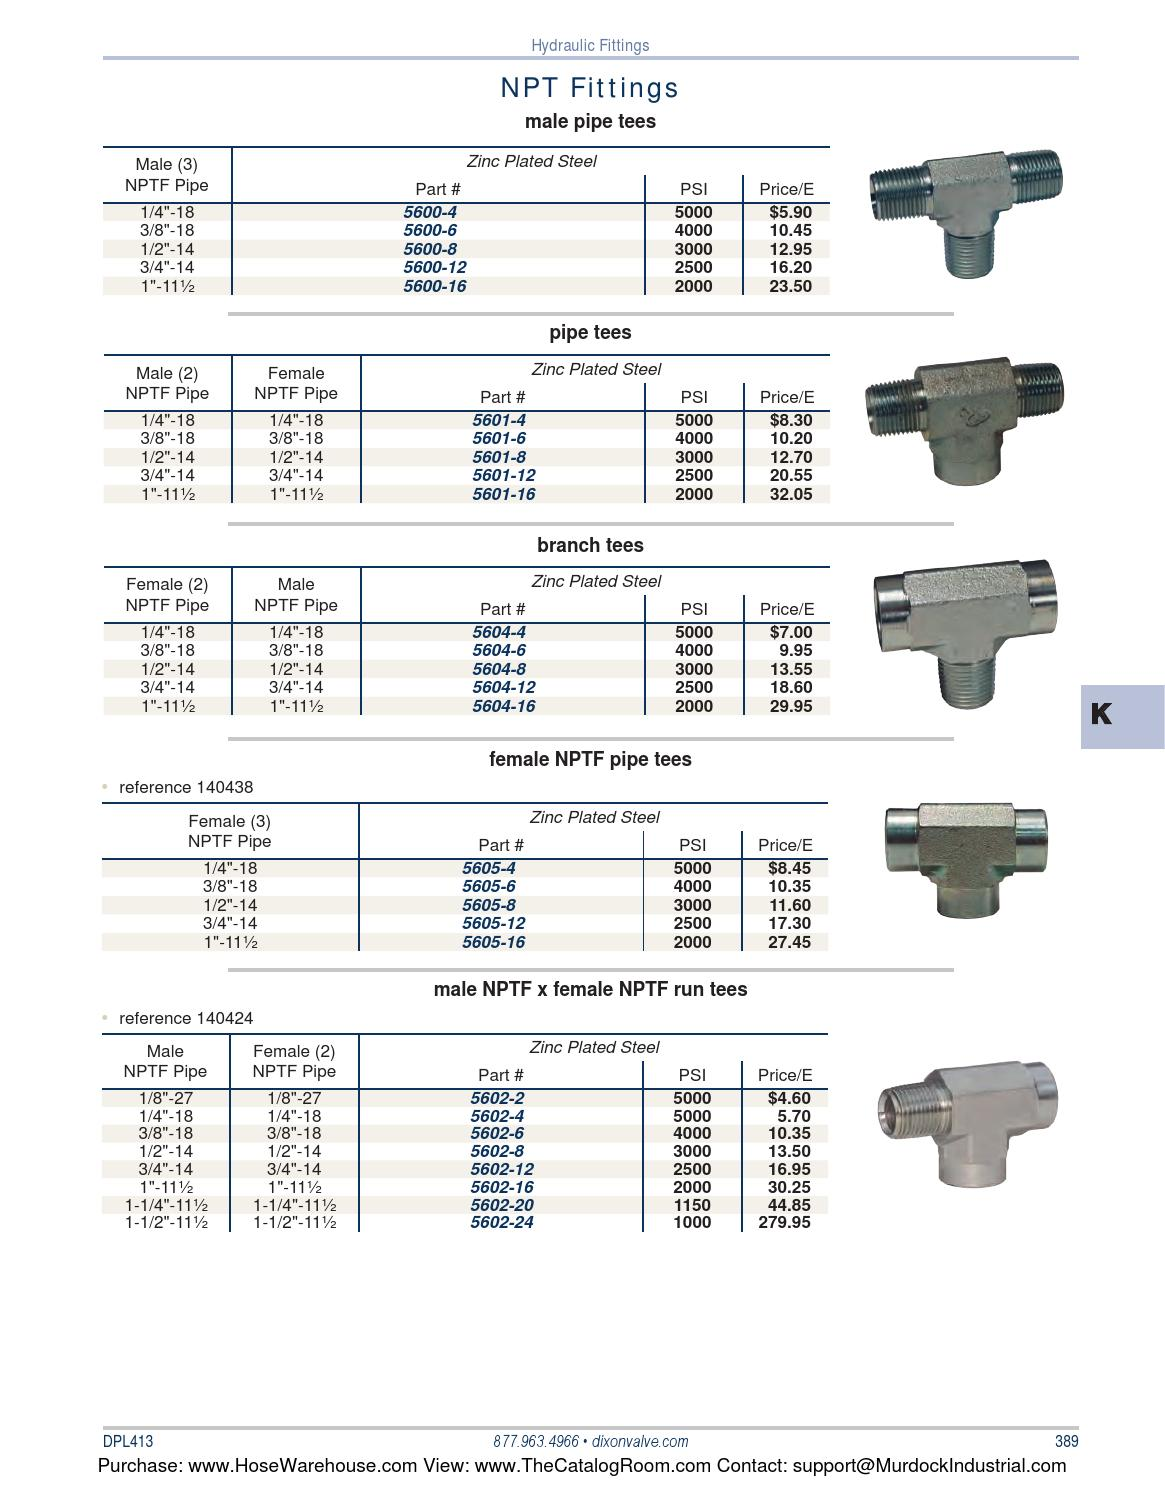 dixon main catalog 2013 part 2 final by murdock industrial inc